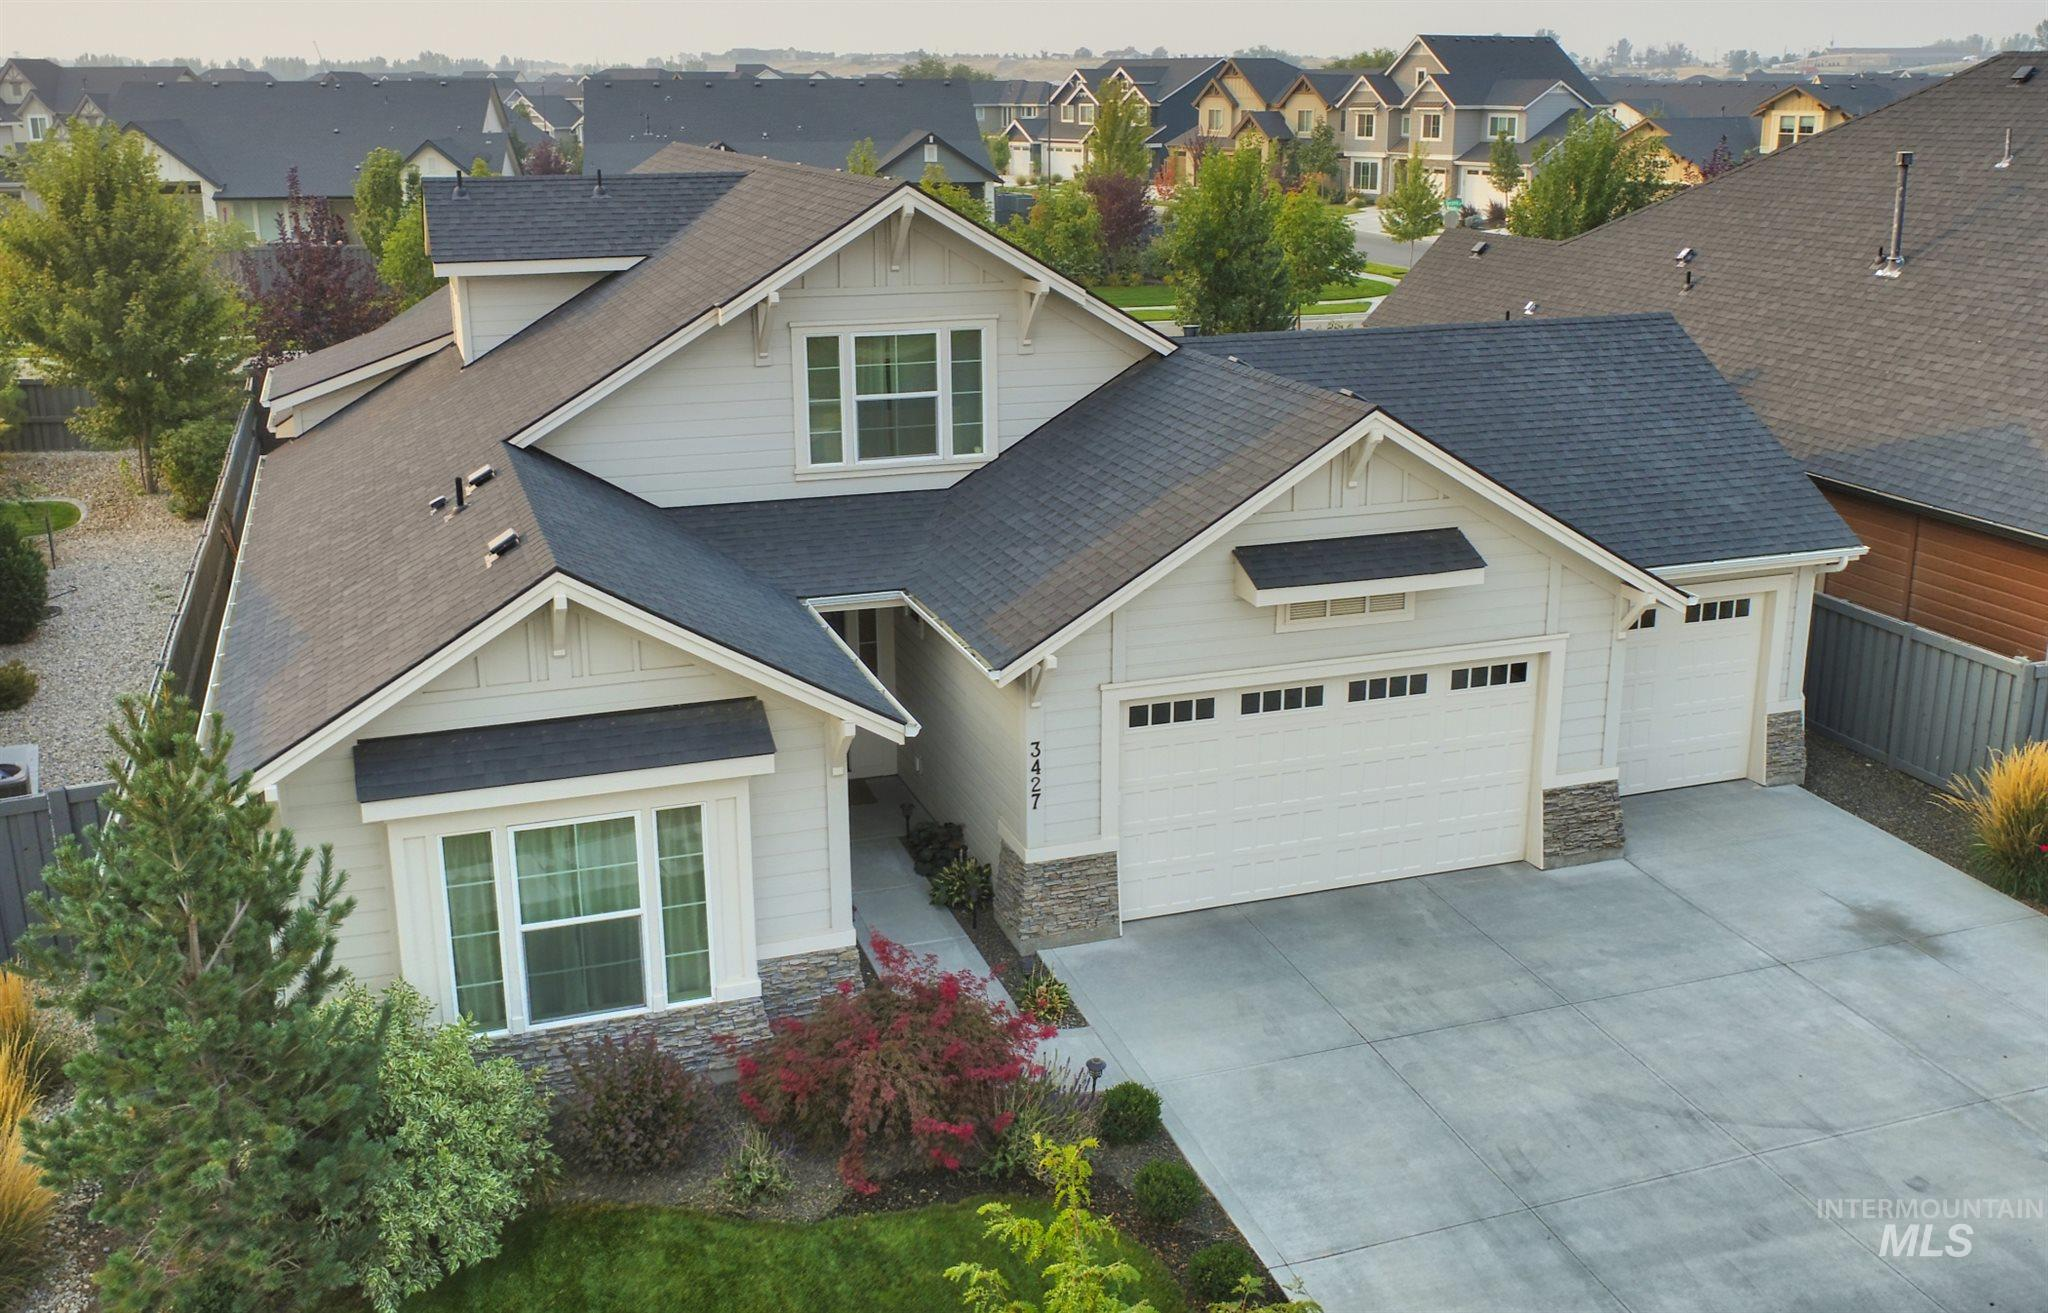 Brighton beauty & quality. This gently lived-in home is thoughtful and spacious. Main level living with an upstairs Bonus room & 3/4 bath, great room built-ins, den, and large covered patio.  Bosch stainless appliances, custom alder stained cabinets and granite counter-tops in the kitchen and master bath.  You'll love the large entry and coffered ceiling detail.  Move right in and enjoy your very private back yard and a great neighborhood. Energy Star Certified home with a HERS rating of 69.